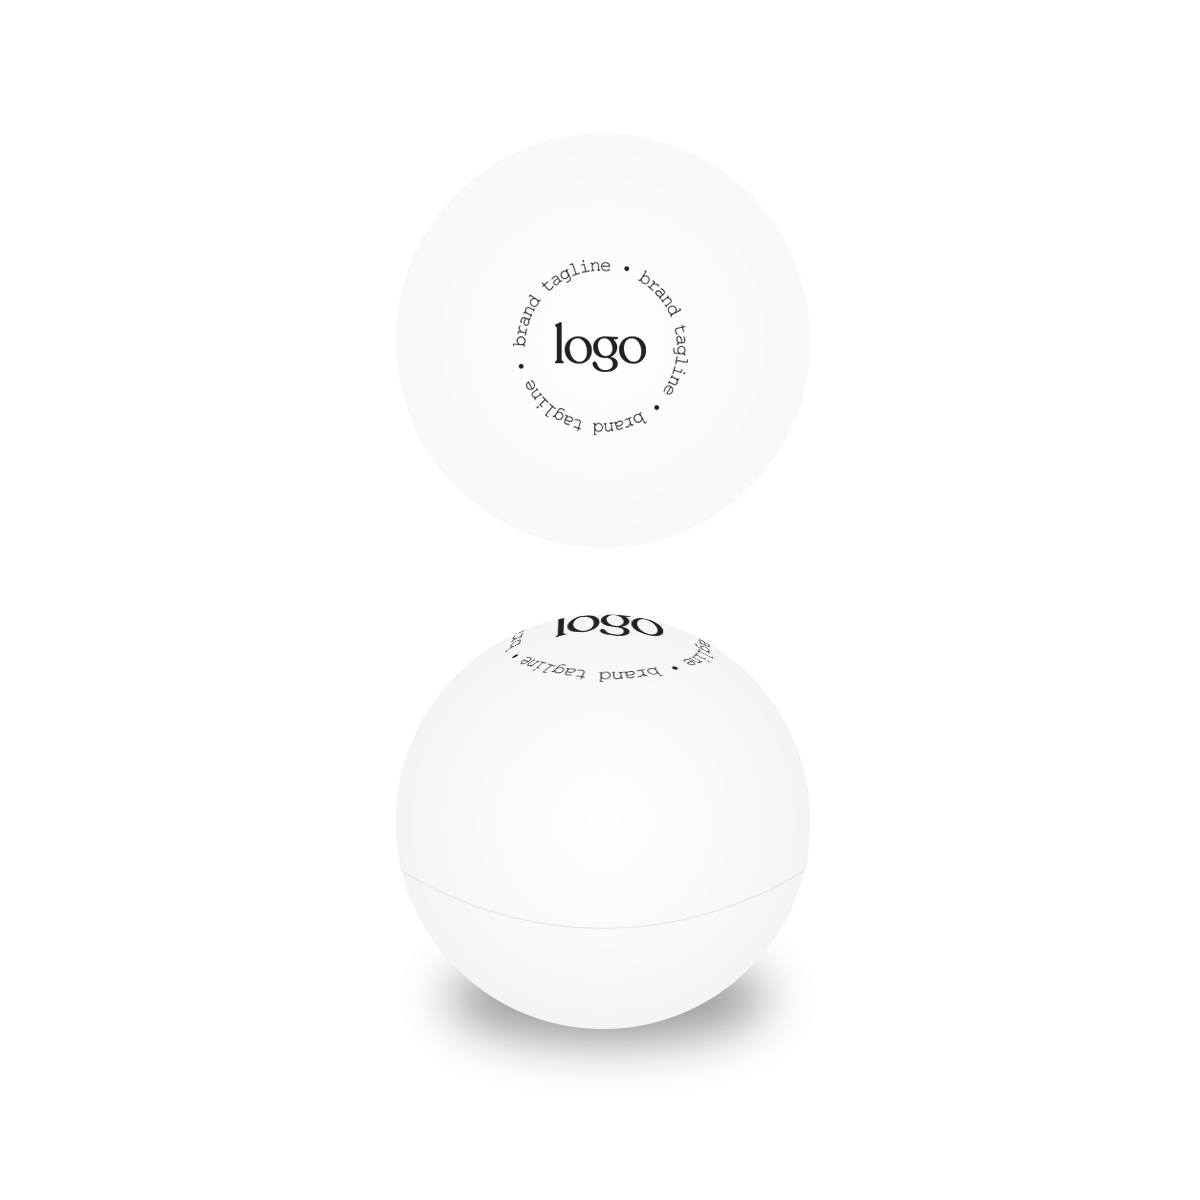 243688 natural lip balm ball one color one location screen